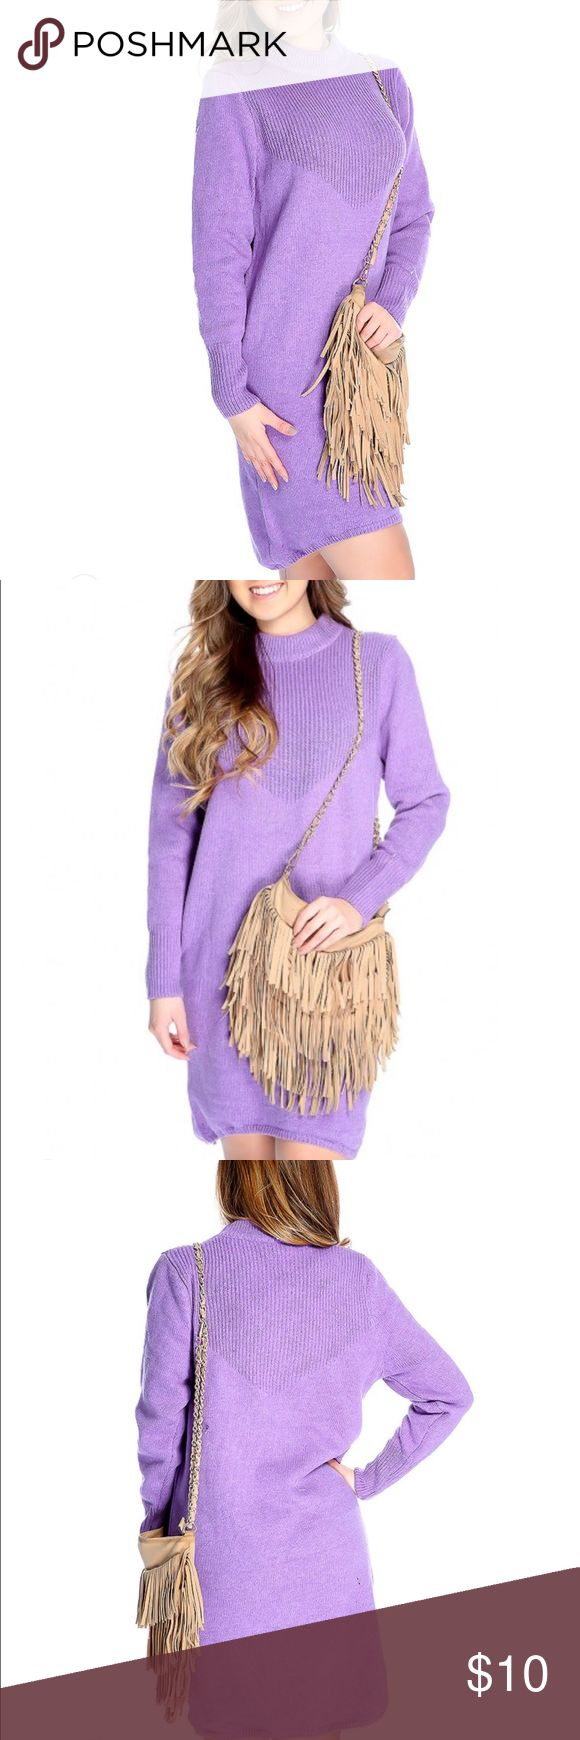 AMI Clubwear Long Sleeve Casual Sweater Dress Lavender colored, oversized sweater dress. High collar - almost mock neck, longer back than front. Fits very large. I typically wear a small and this could have easily fit a large or XL. Never worn. AMI Clubwear Dresses